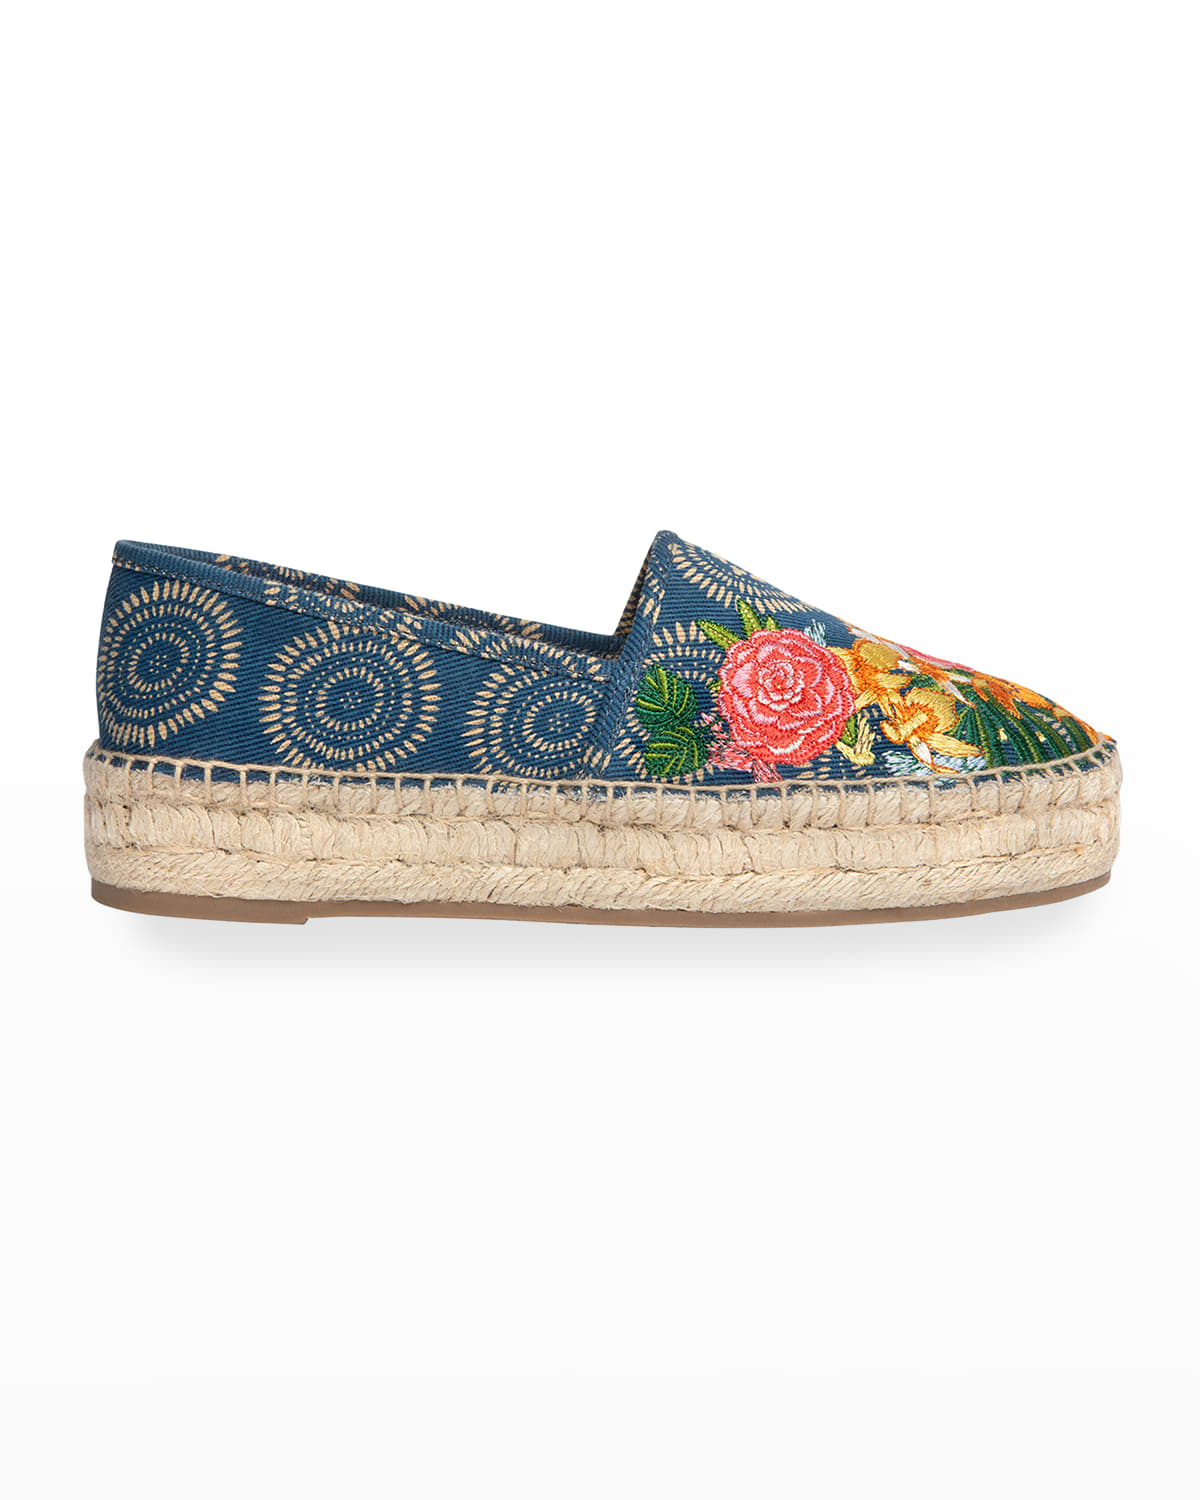 Anenome Embroidered Floral Espadrilles